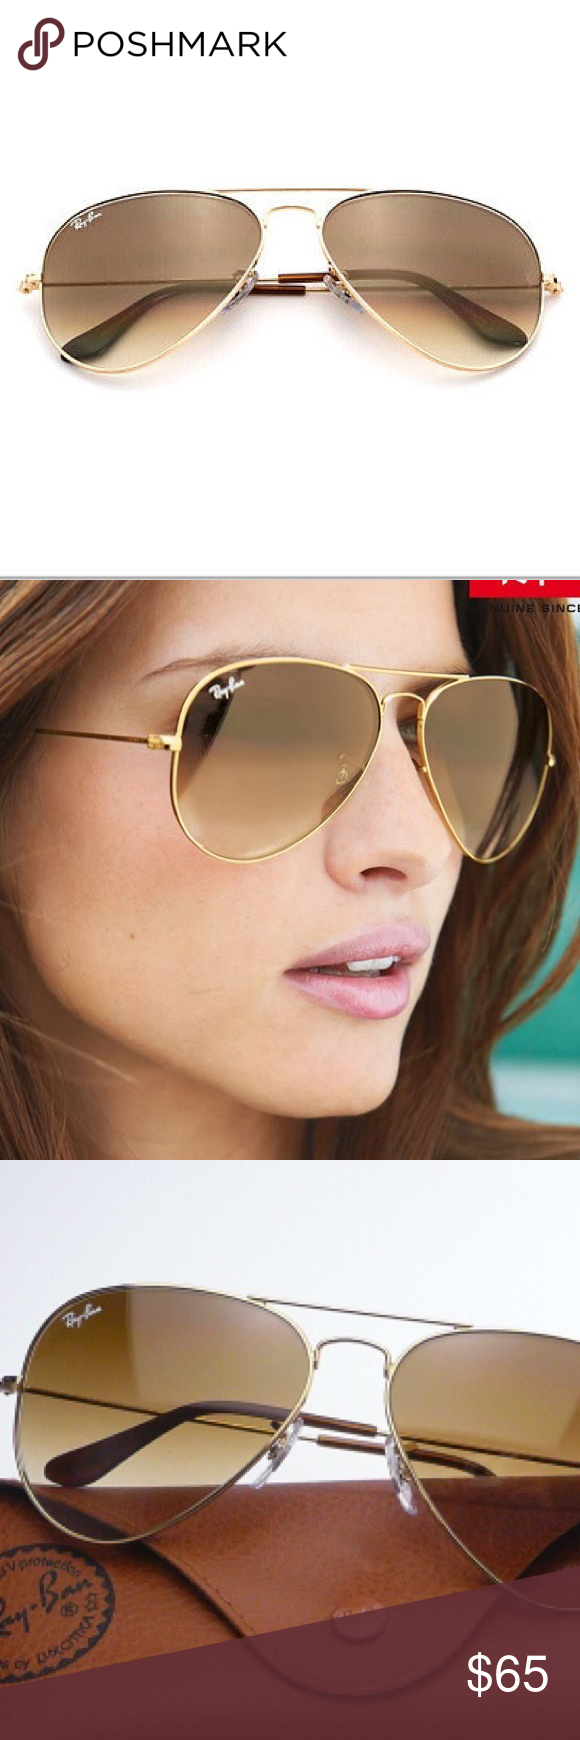 65a4a4d1357 Ray-Ban Aviator Gold Brown Gradient RB3025 001 51 Ray-Ban Aviator Gradient  sunglasses encompass the teardrop shape that started it all.